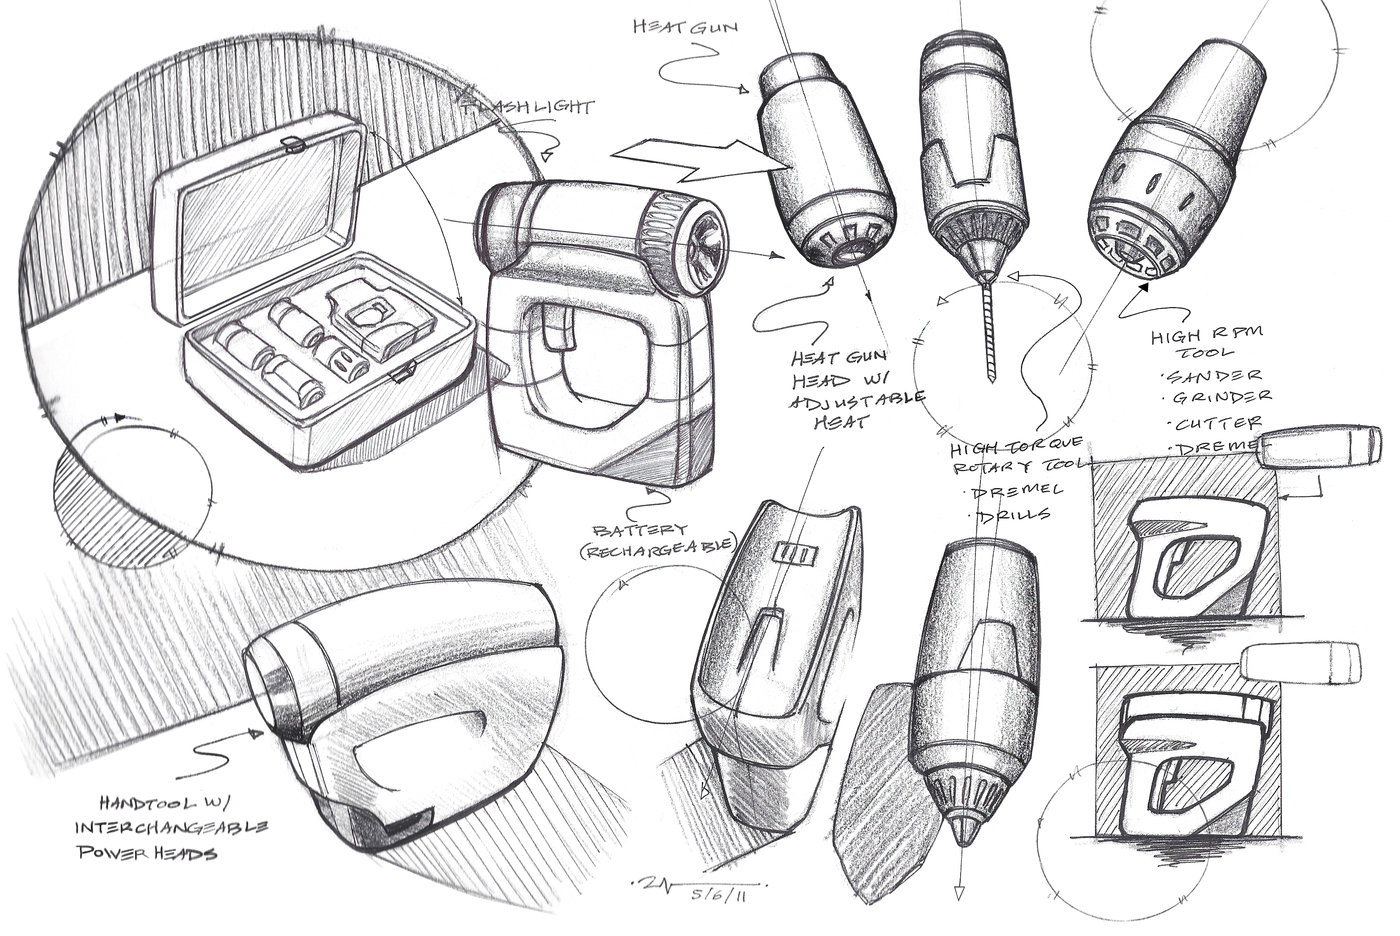 Technical Sketches by Ryan Nguyen at Coroflot.com